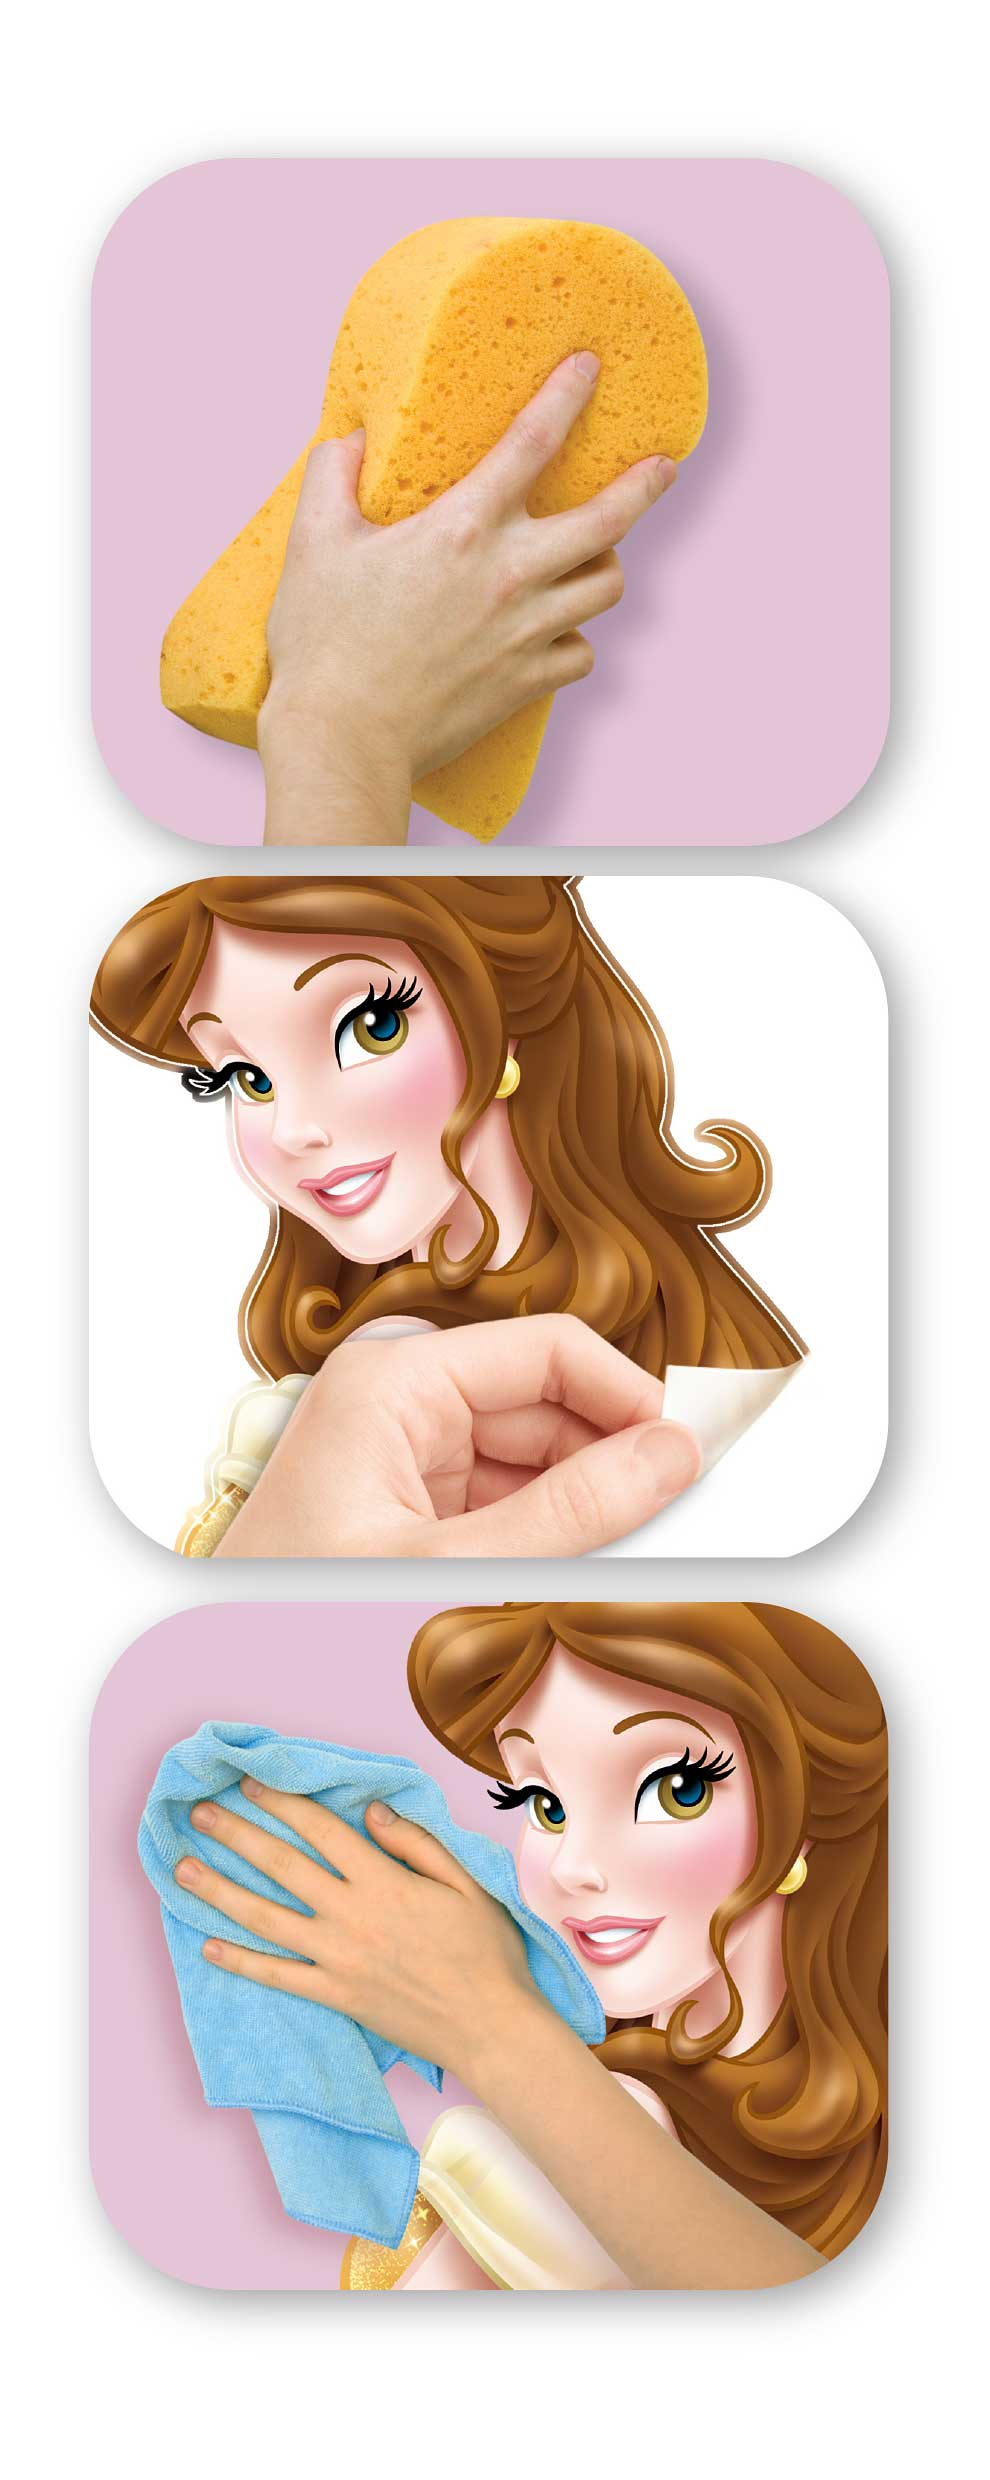 Wandtattoo Disney Princess-Walltastic Wandsticker